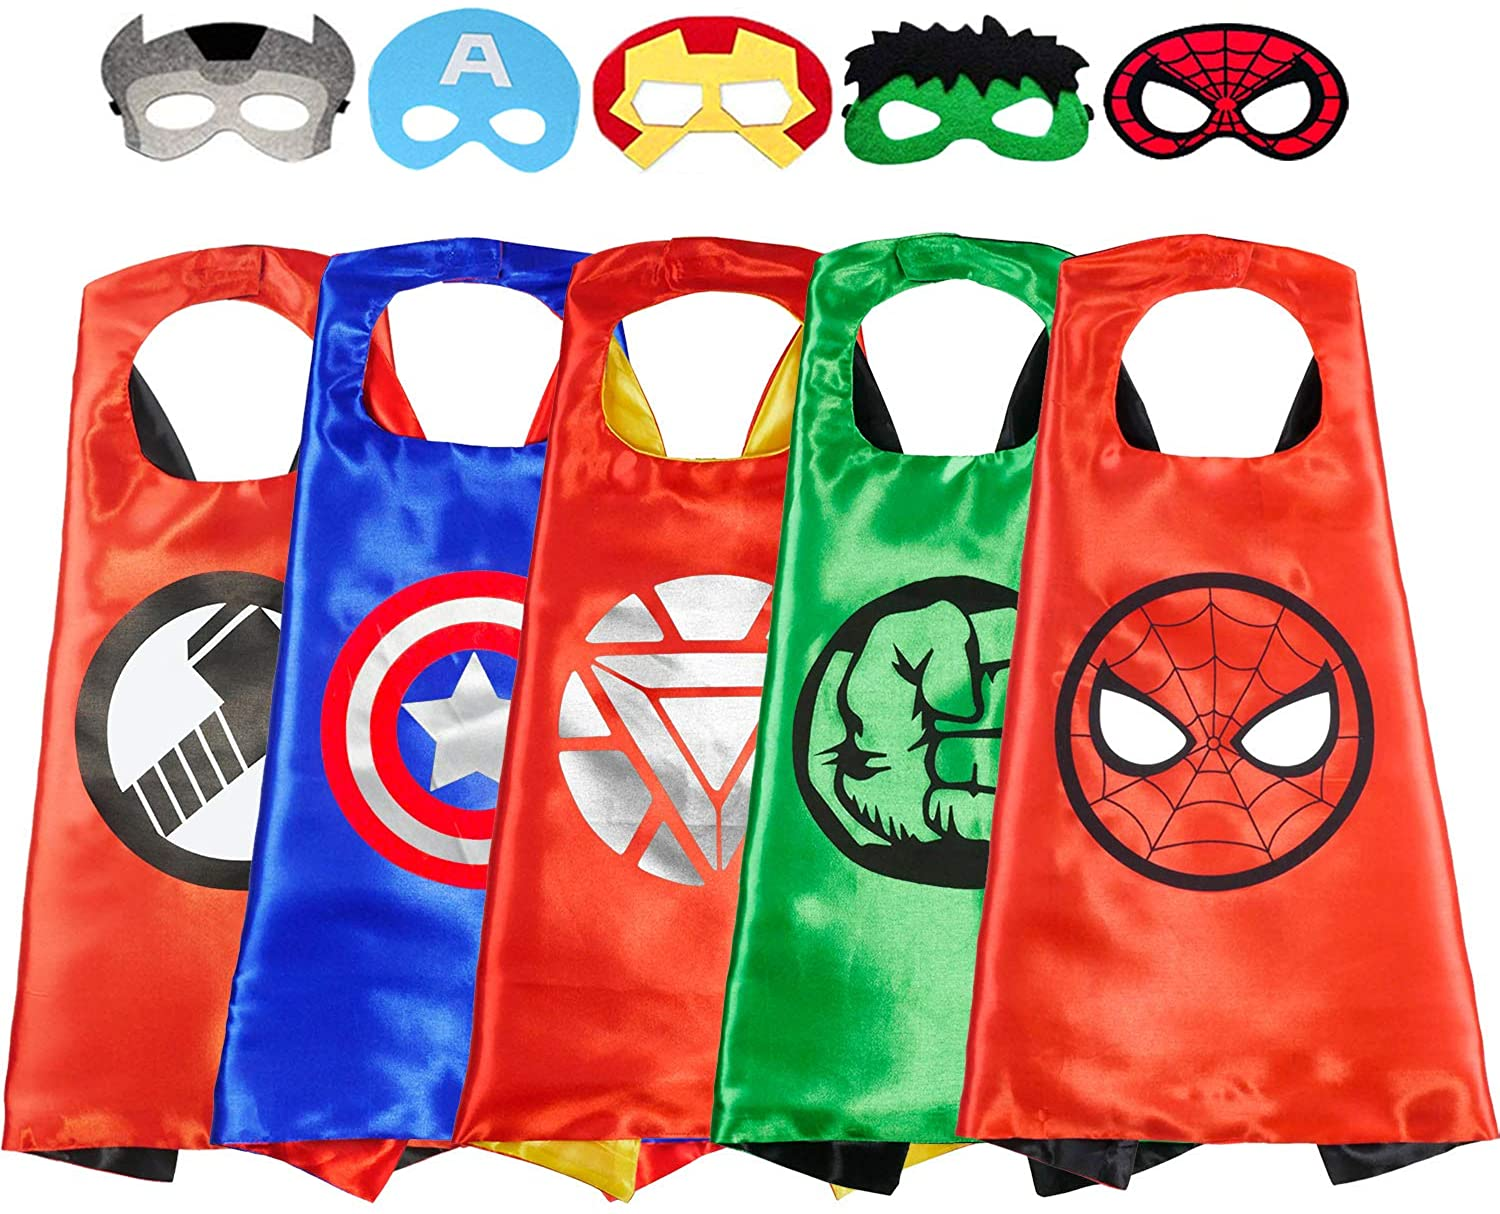 Superhero Capes with Masks Dress up Role Play Cosplay Costume Halloween Christmas Birthday Party Supplies for Kids